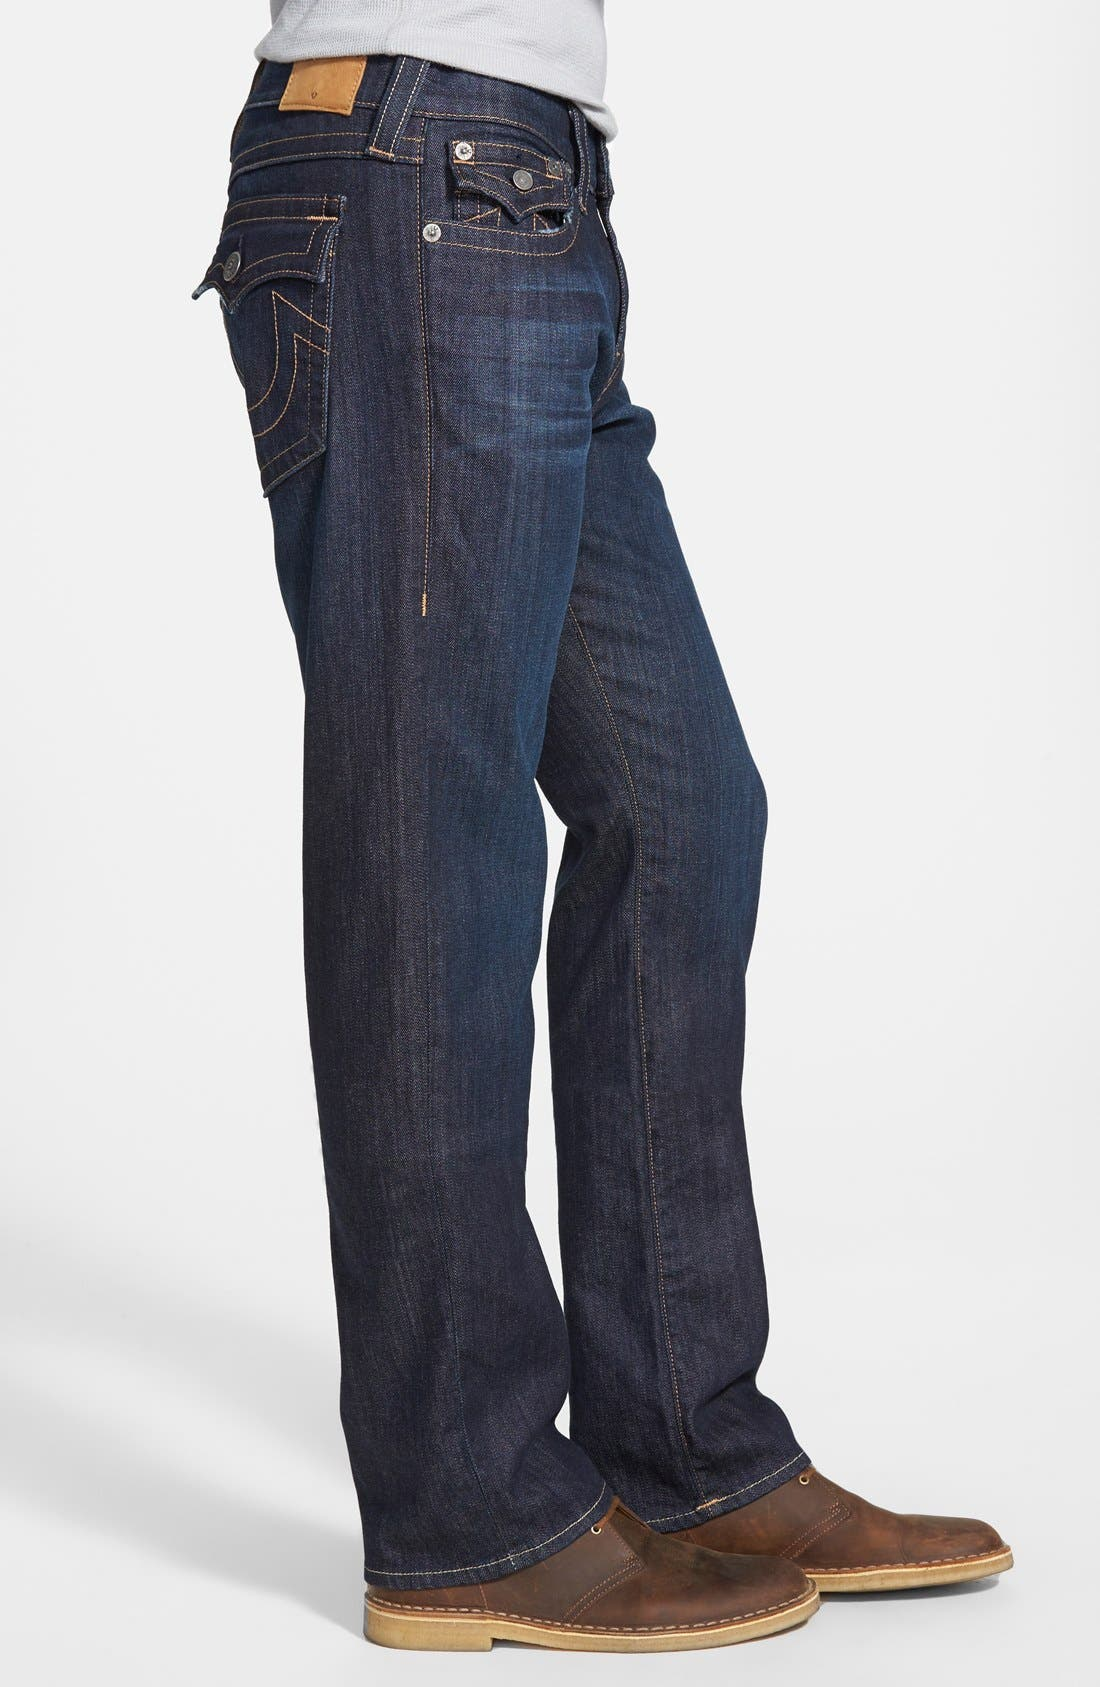 Alternate Image 3  - True Religion Brand Jeans 'Ricky' Relaxed Fit Jeans (Wanted Man)